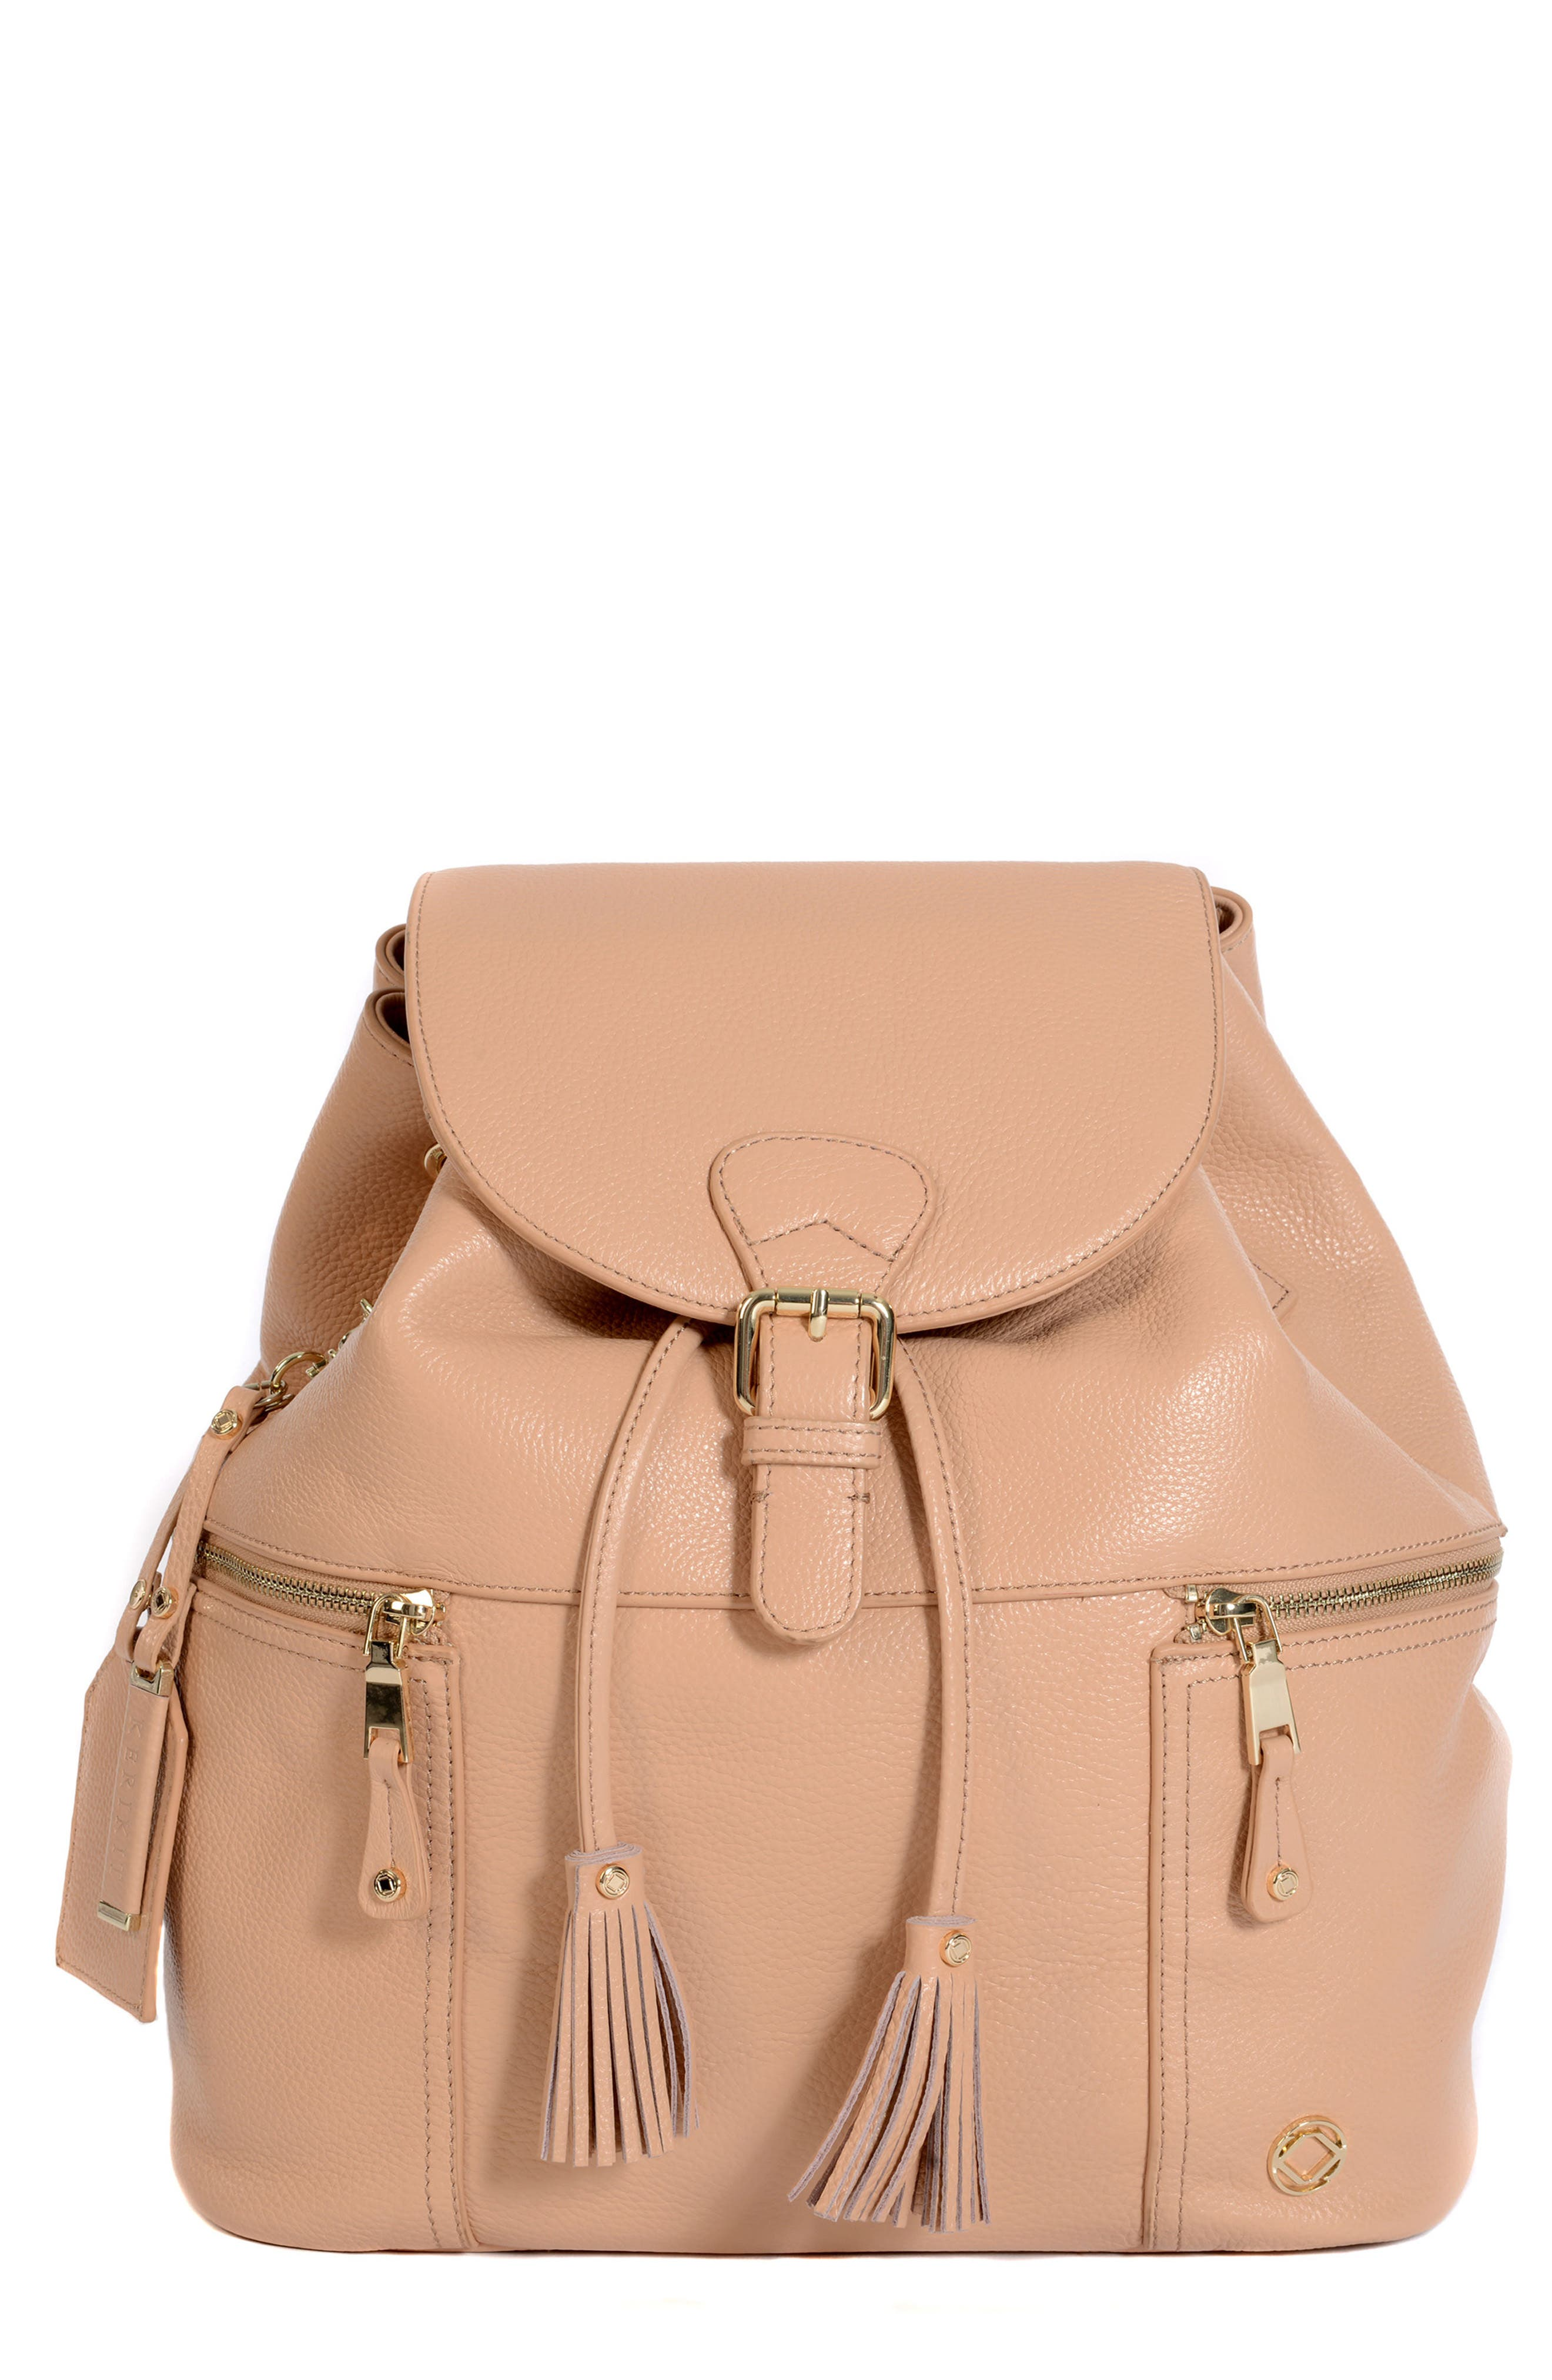 Thor Leather Backpack,                         Main,                         color, Nude With Gold Hardware